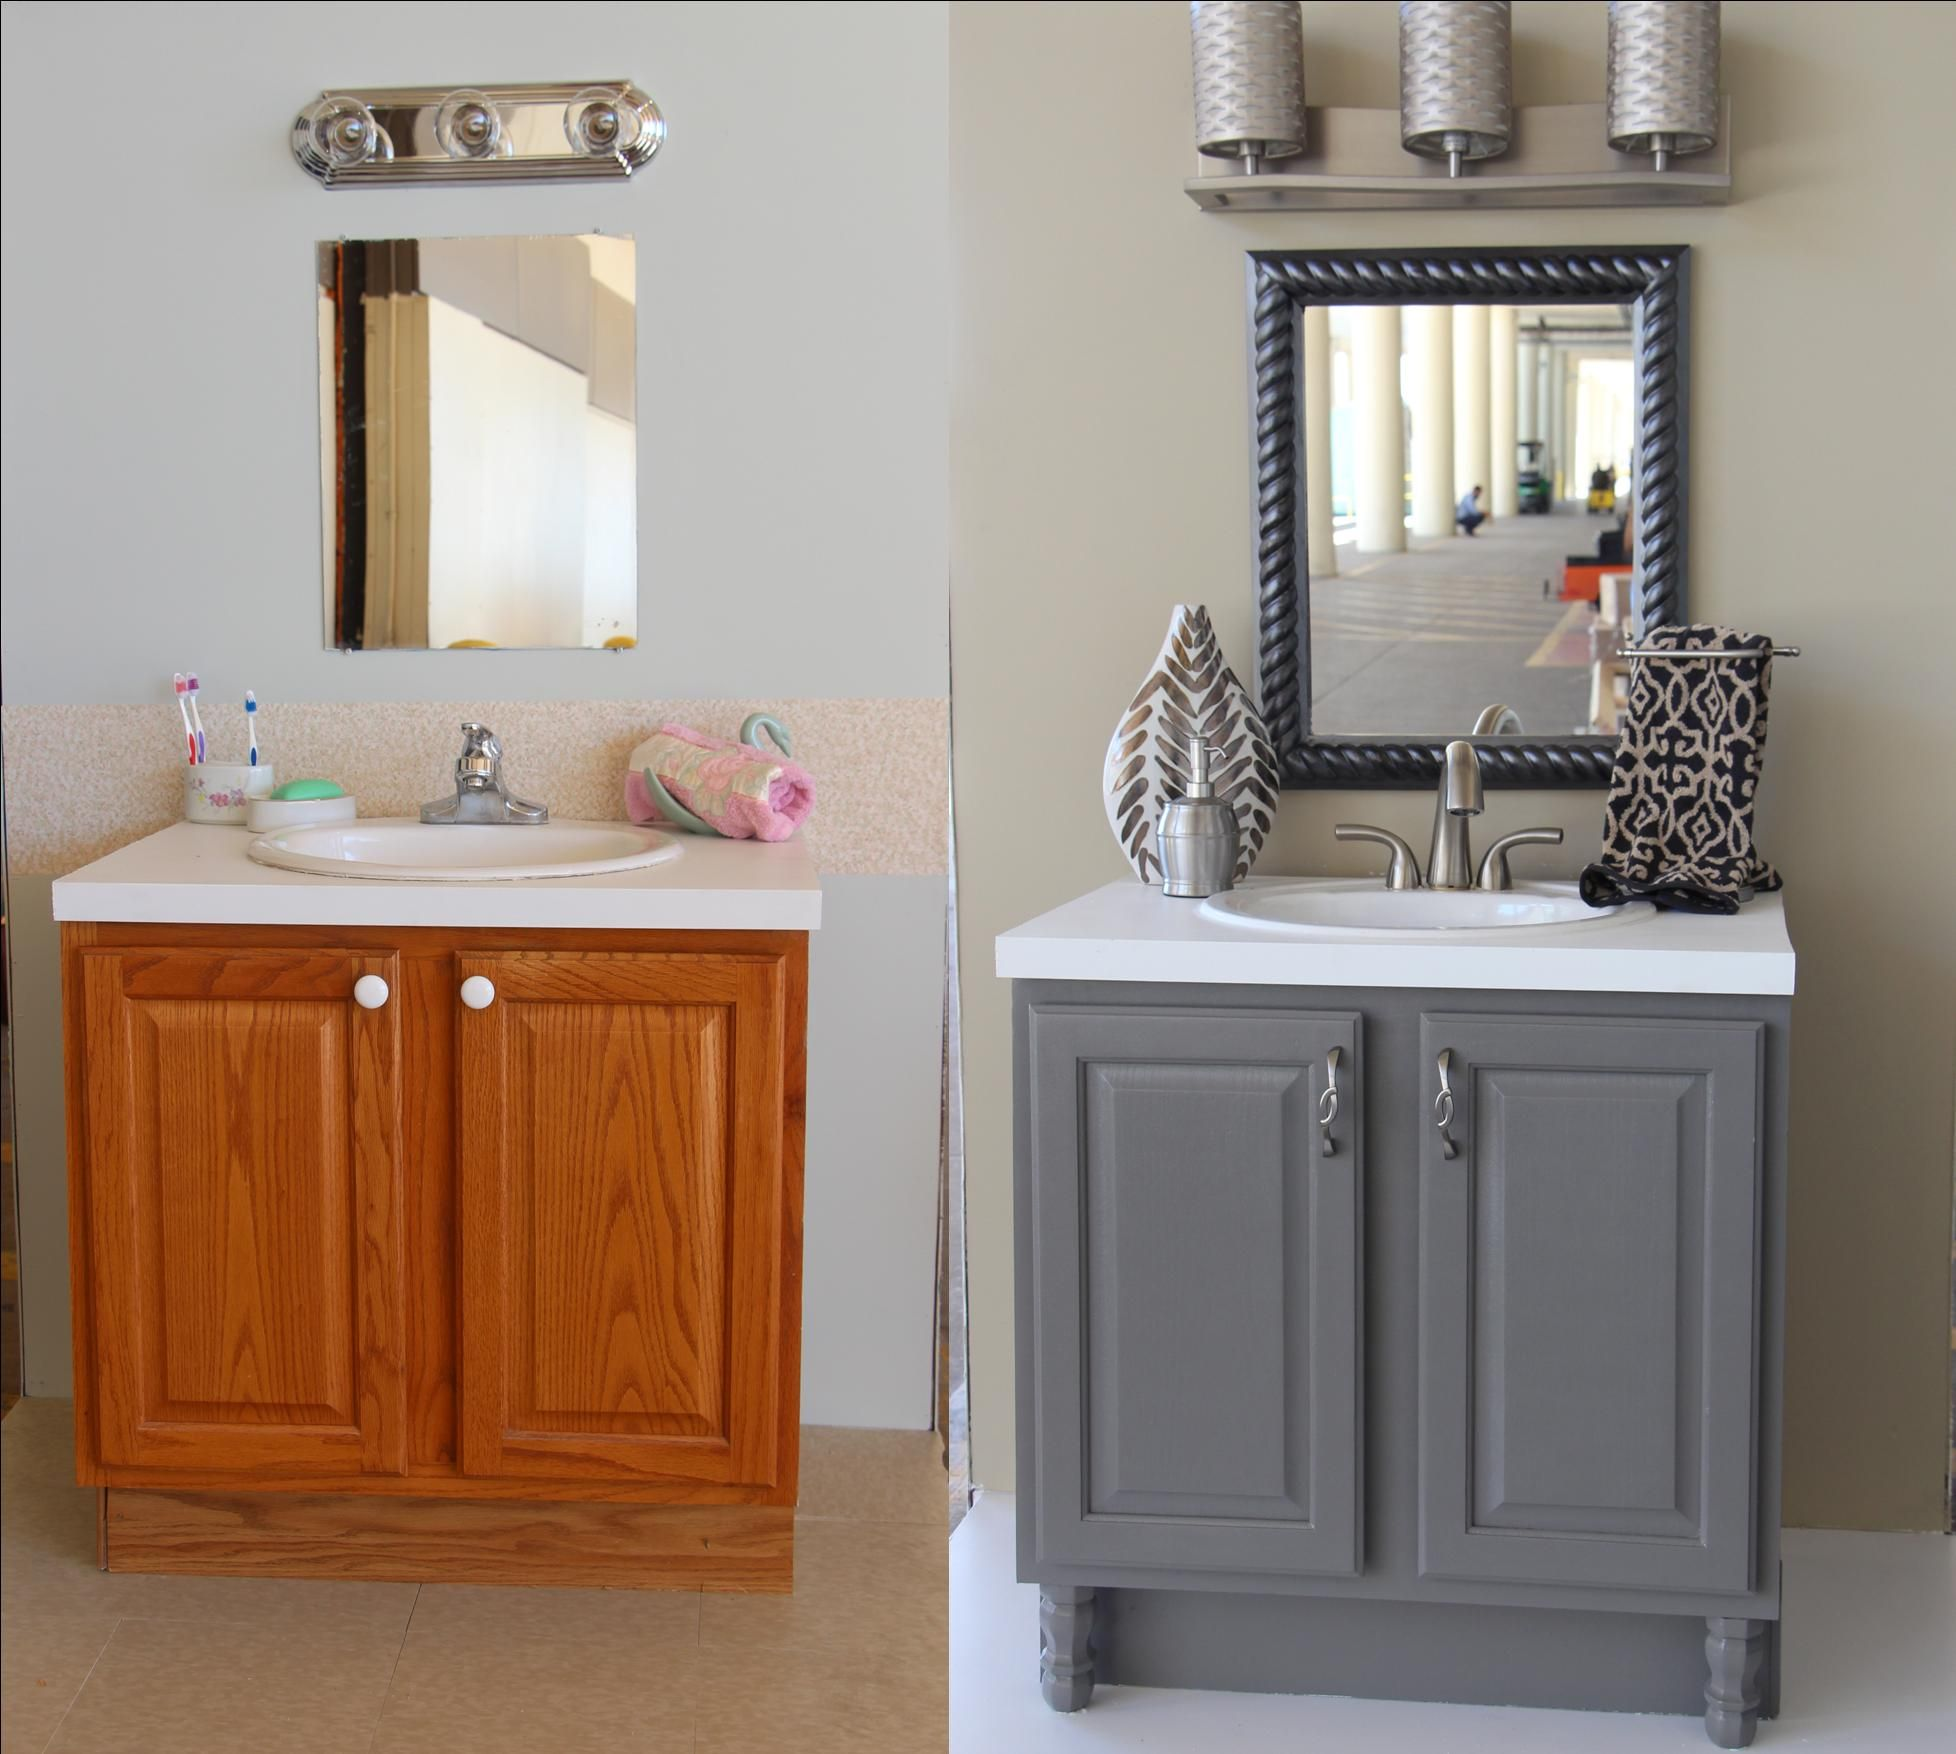 Bathroom updates you can do this weekend bath diy for Bathroom updates